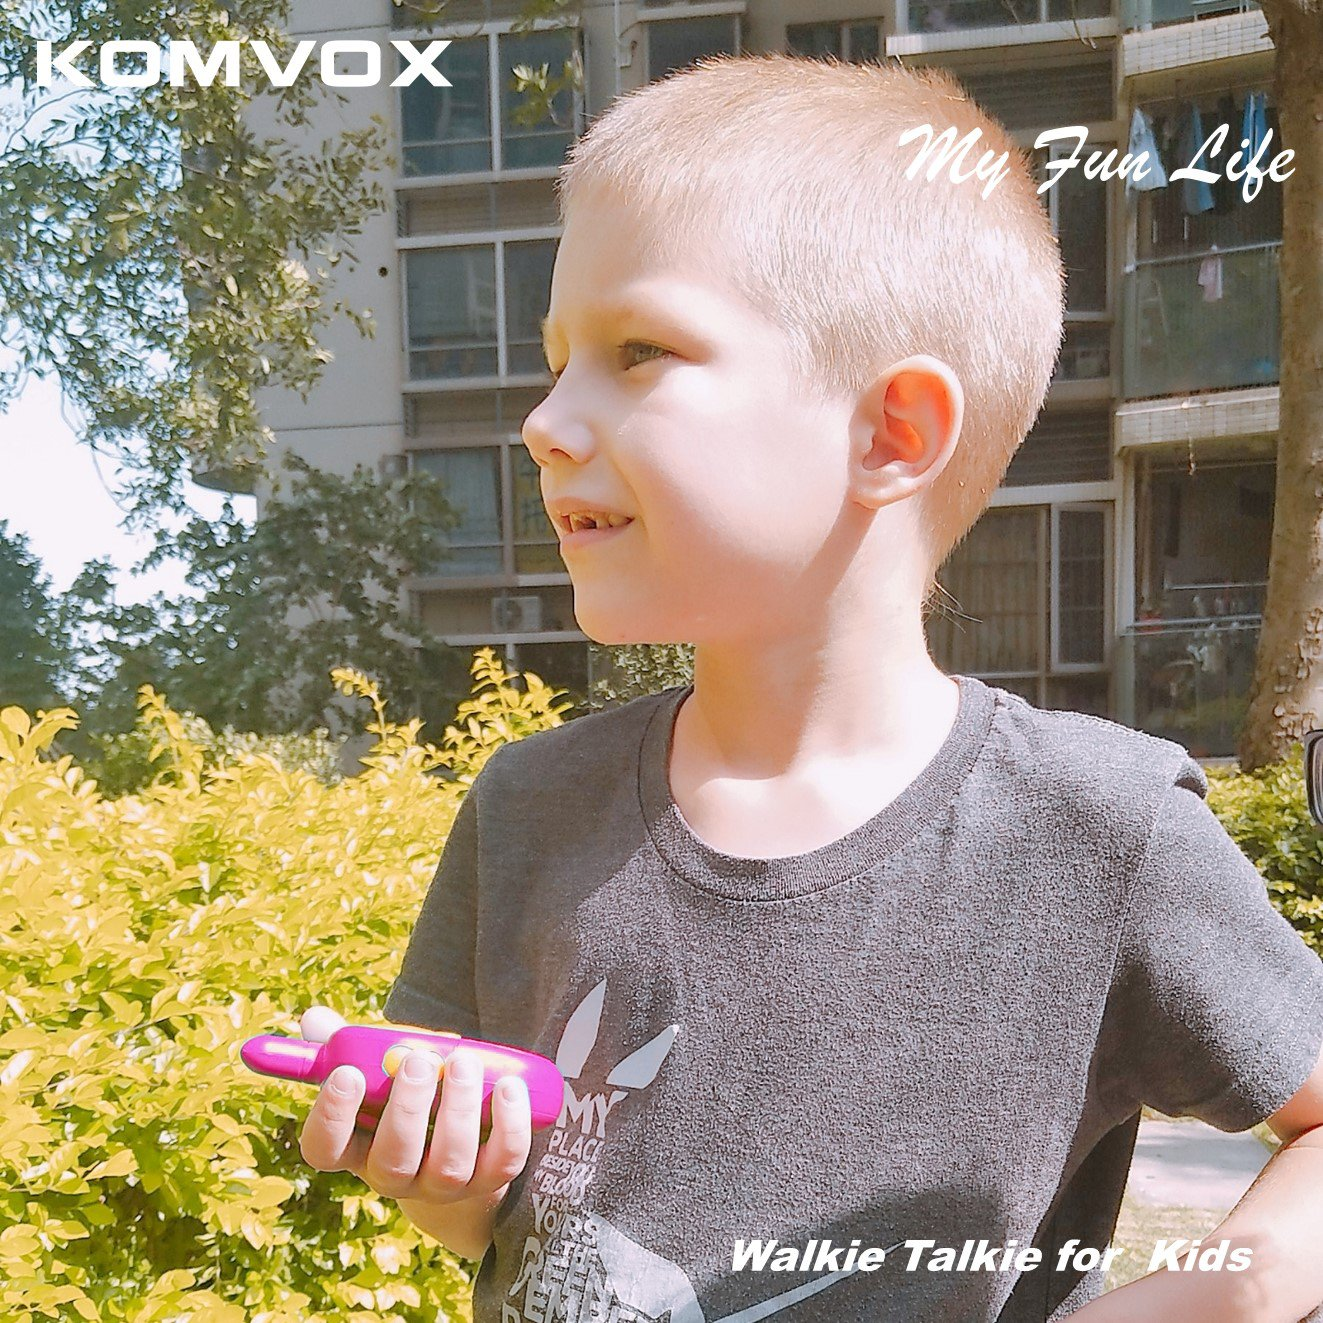 KOMVOX Walkie Talkies for Kids, Toys for Girls Age 3 4 5 6, Kids Birthday Gifts for 3 4 5 Year Old Girls, Top Toys for Girls Pink Gifts by KOMVOX (Image #7)